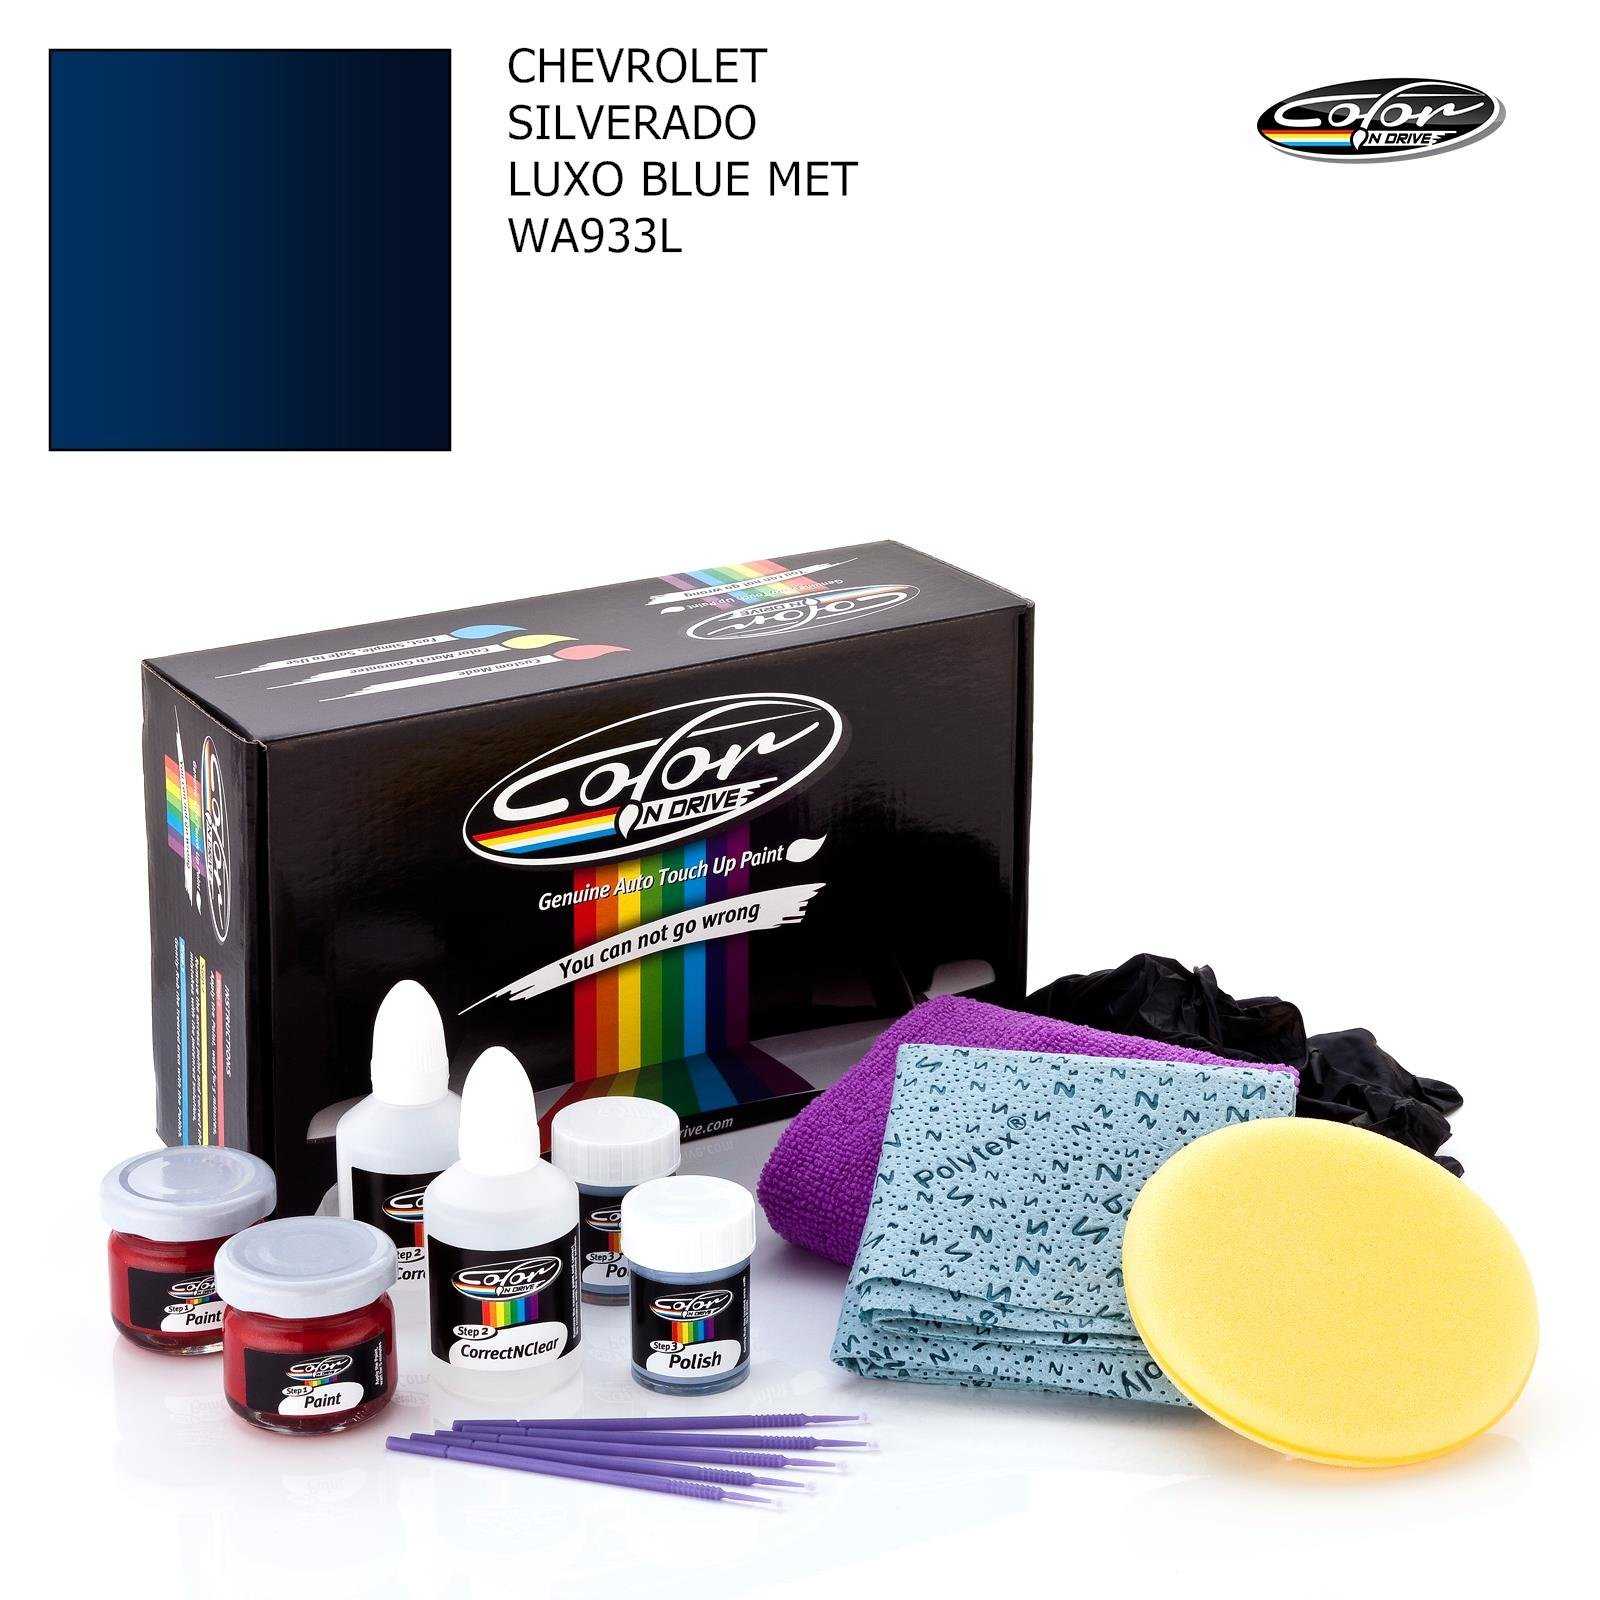 CHEVROLET SILVERADO / LUXO BLUE MET - WA933L / COLOR N DRIVE TOUCH UP PAINT SYSTEM FOR PAINT CHIPS AND SCRATCHES / BASIC PACK